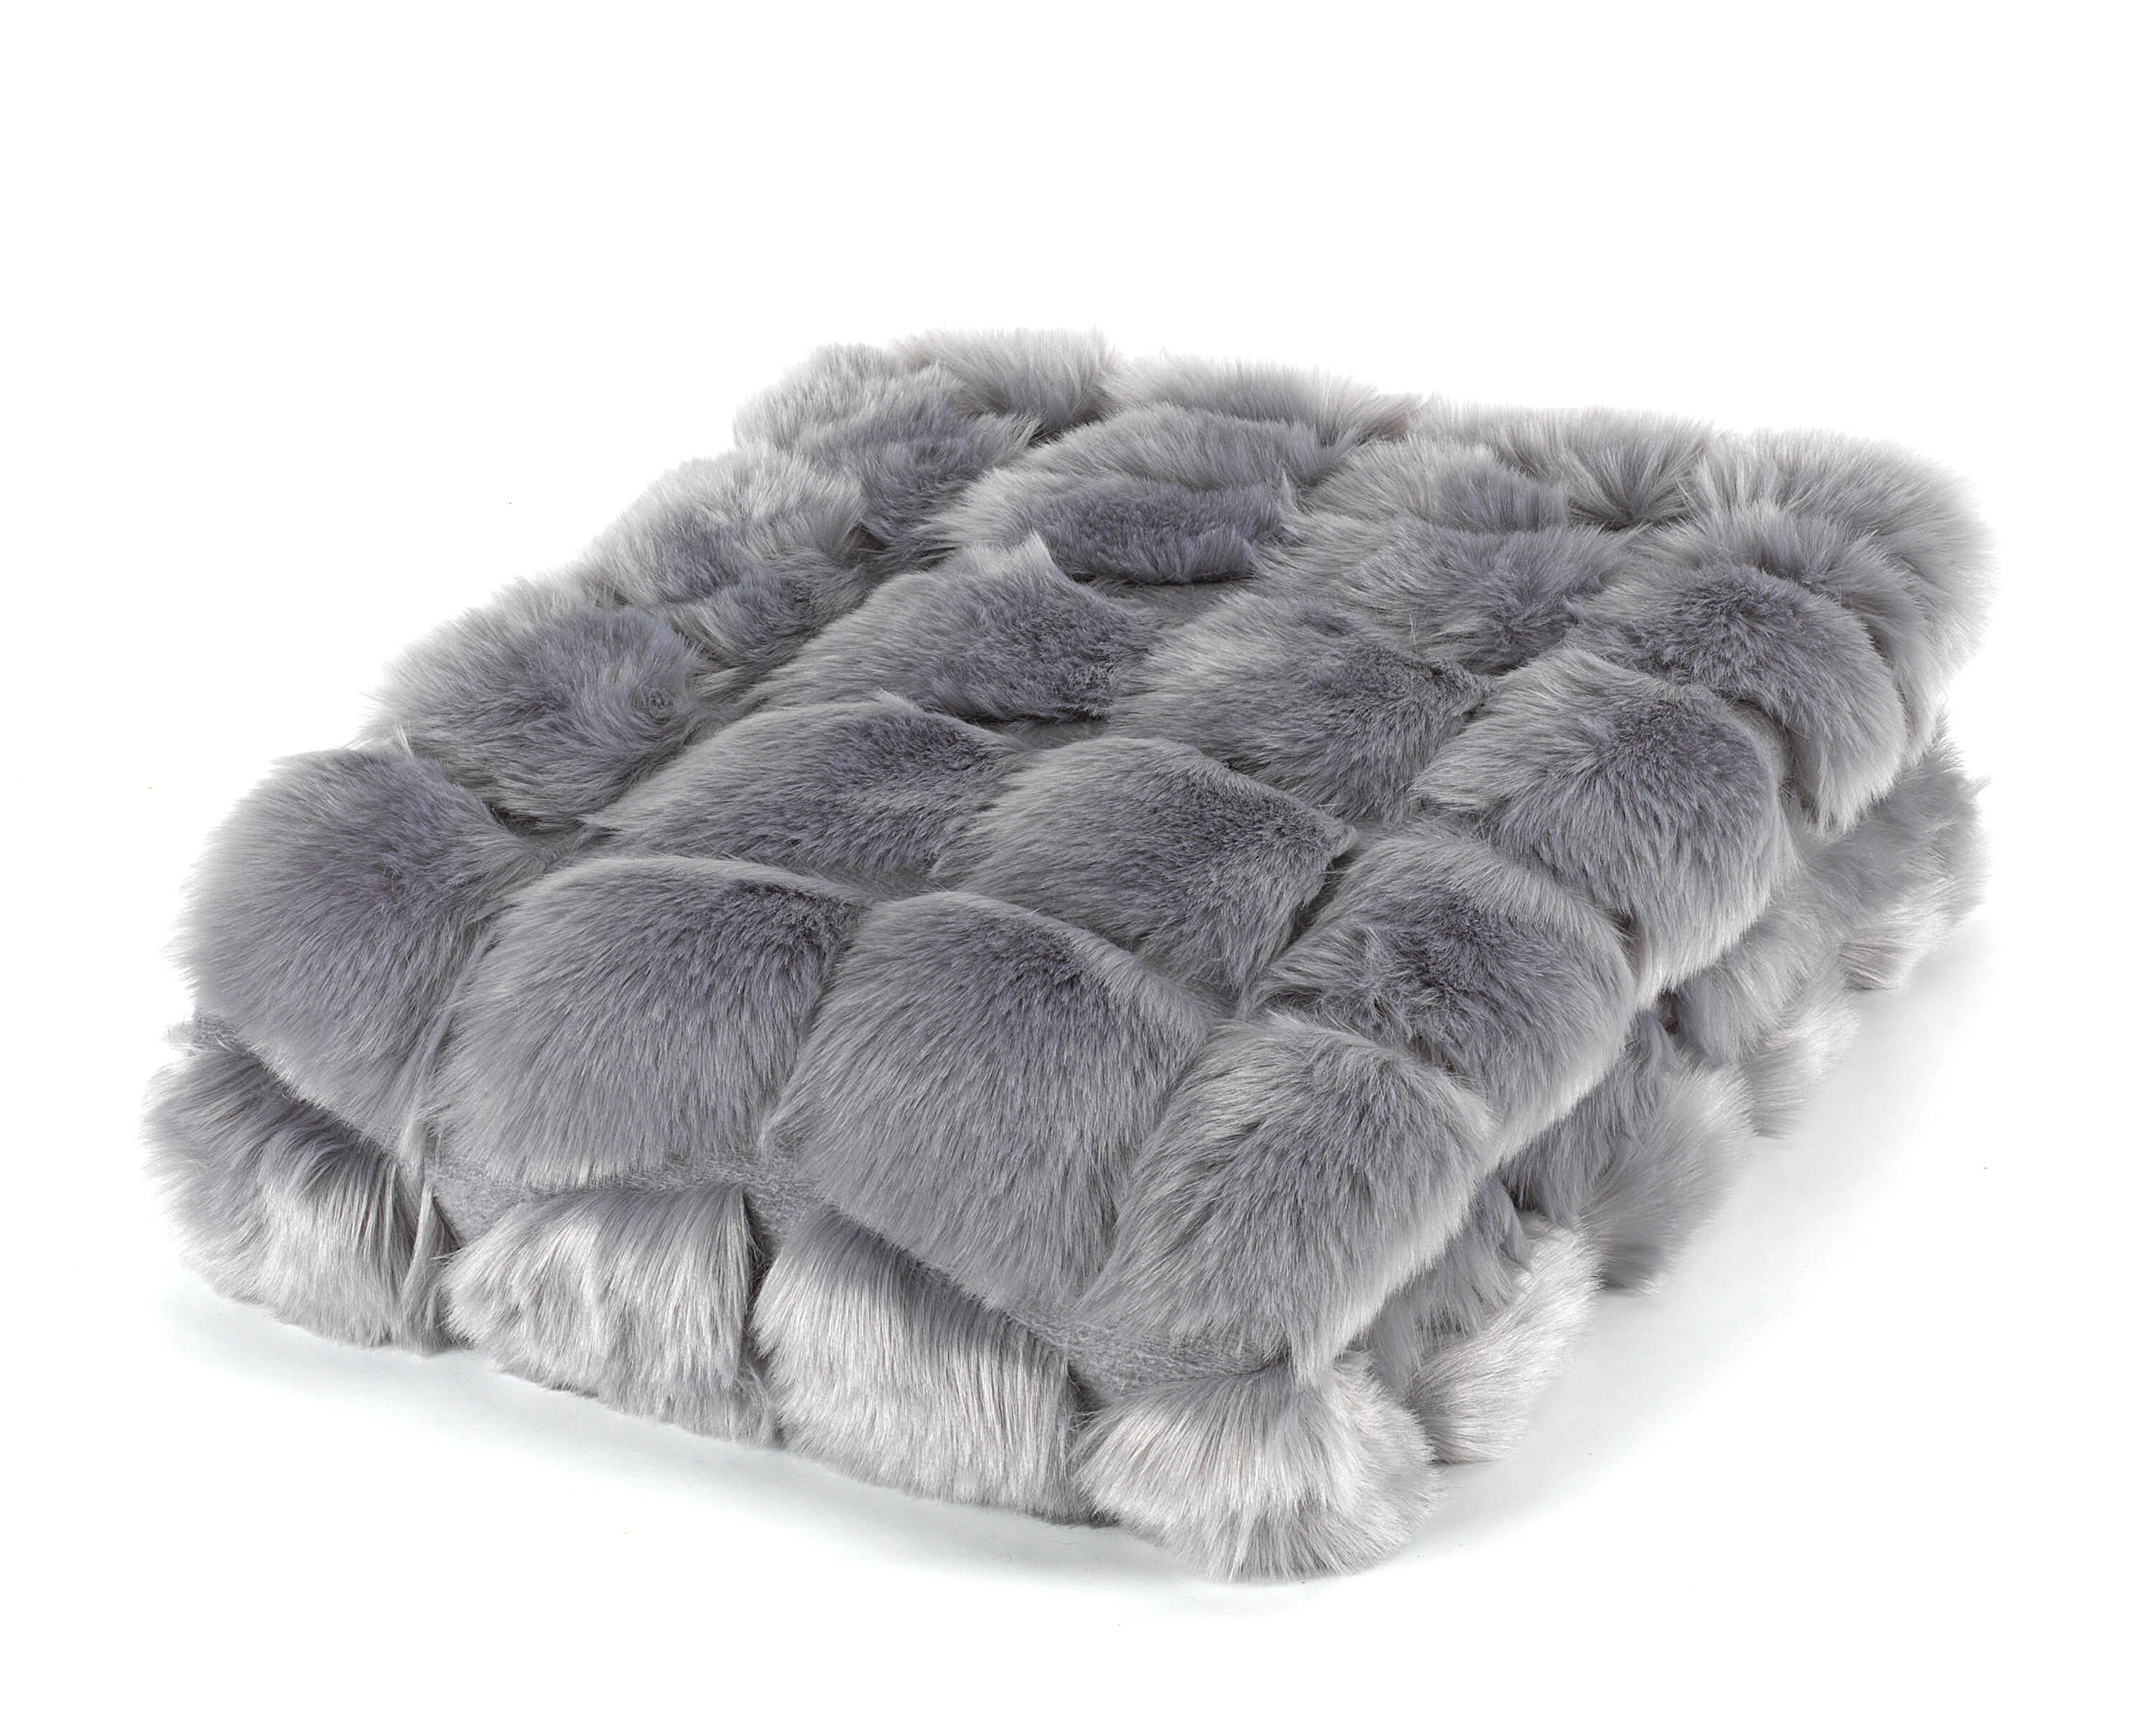 Mora Kibo Interior Luxury Soft Fox Faux Fur Throw Blanket